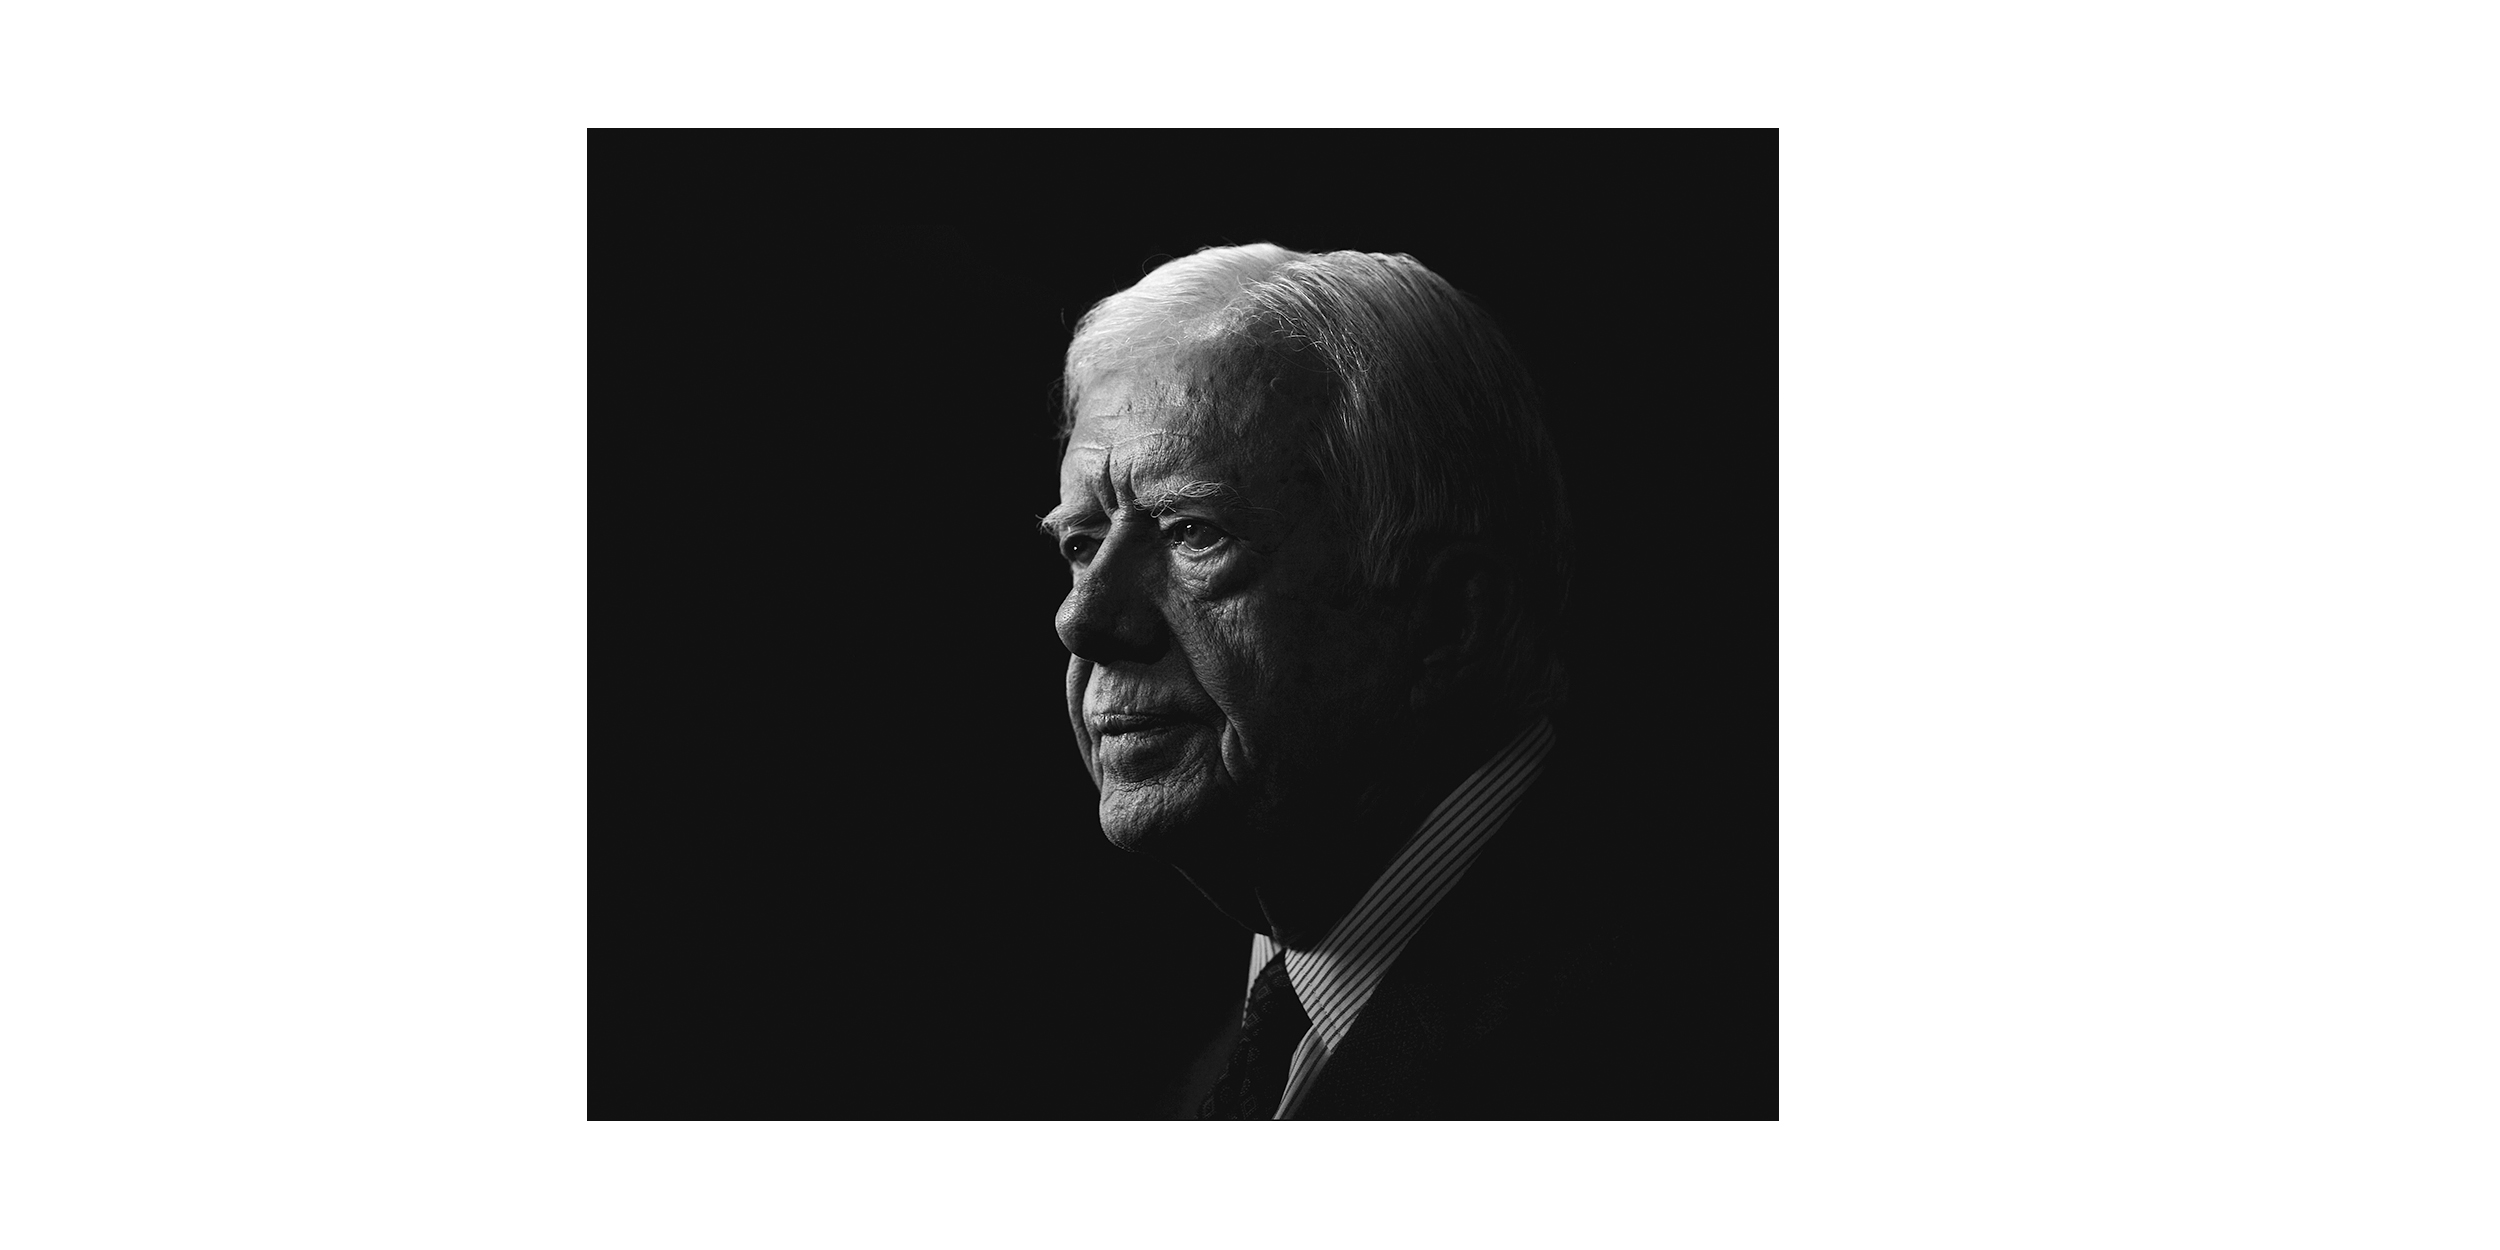 Jimmy Carter, 39th President of the United States